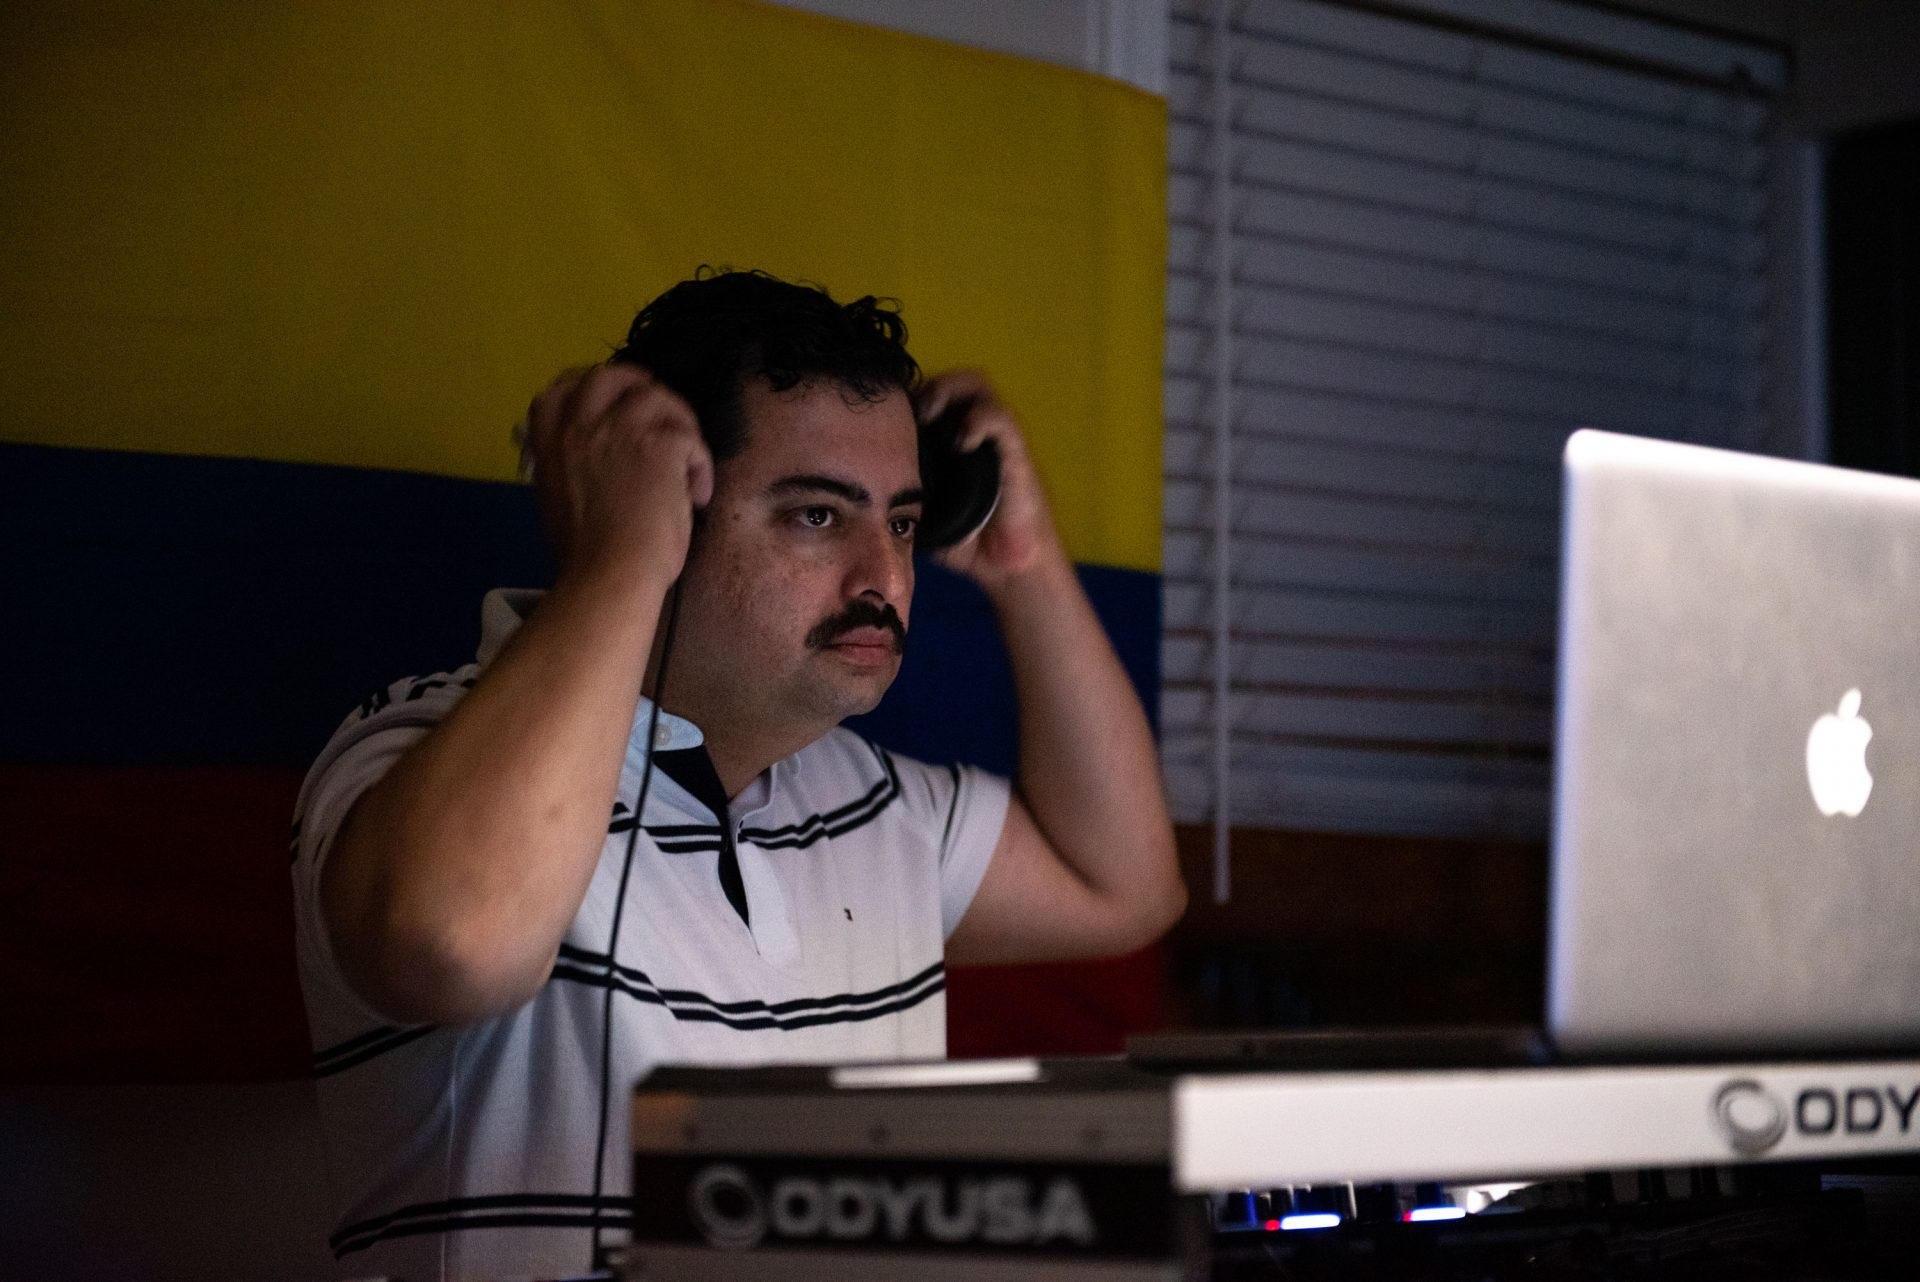 Jose Cardona, a Wilmington-area DJ, adjusts his headphones while keeping the music going during an at-home viejoteca in Oxford Circle on Saturday, September 14, 2019.